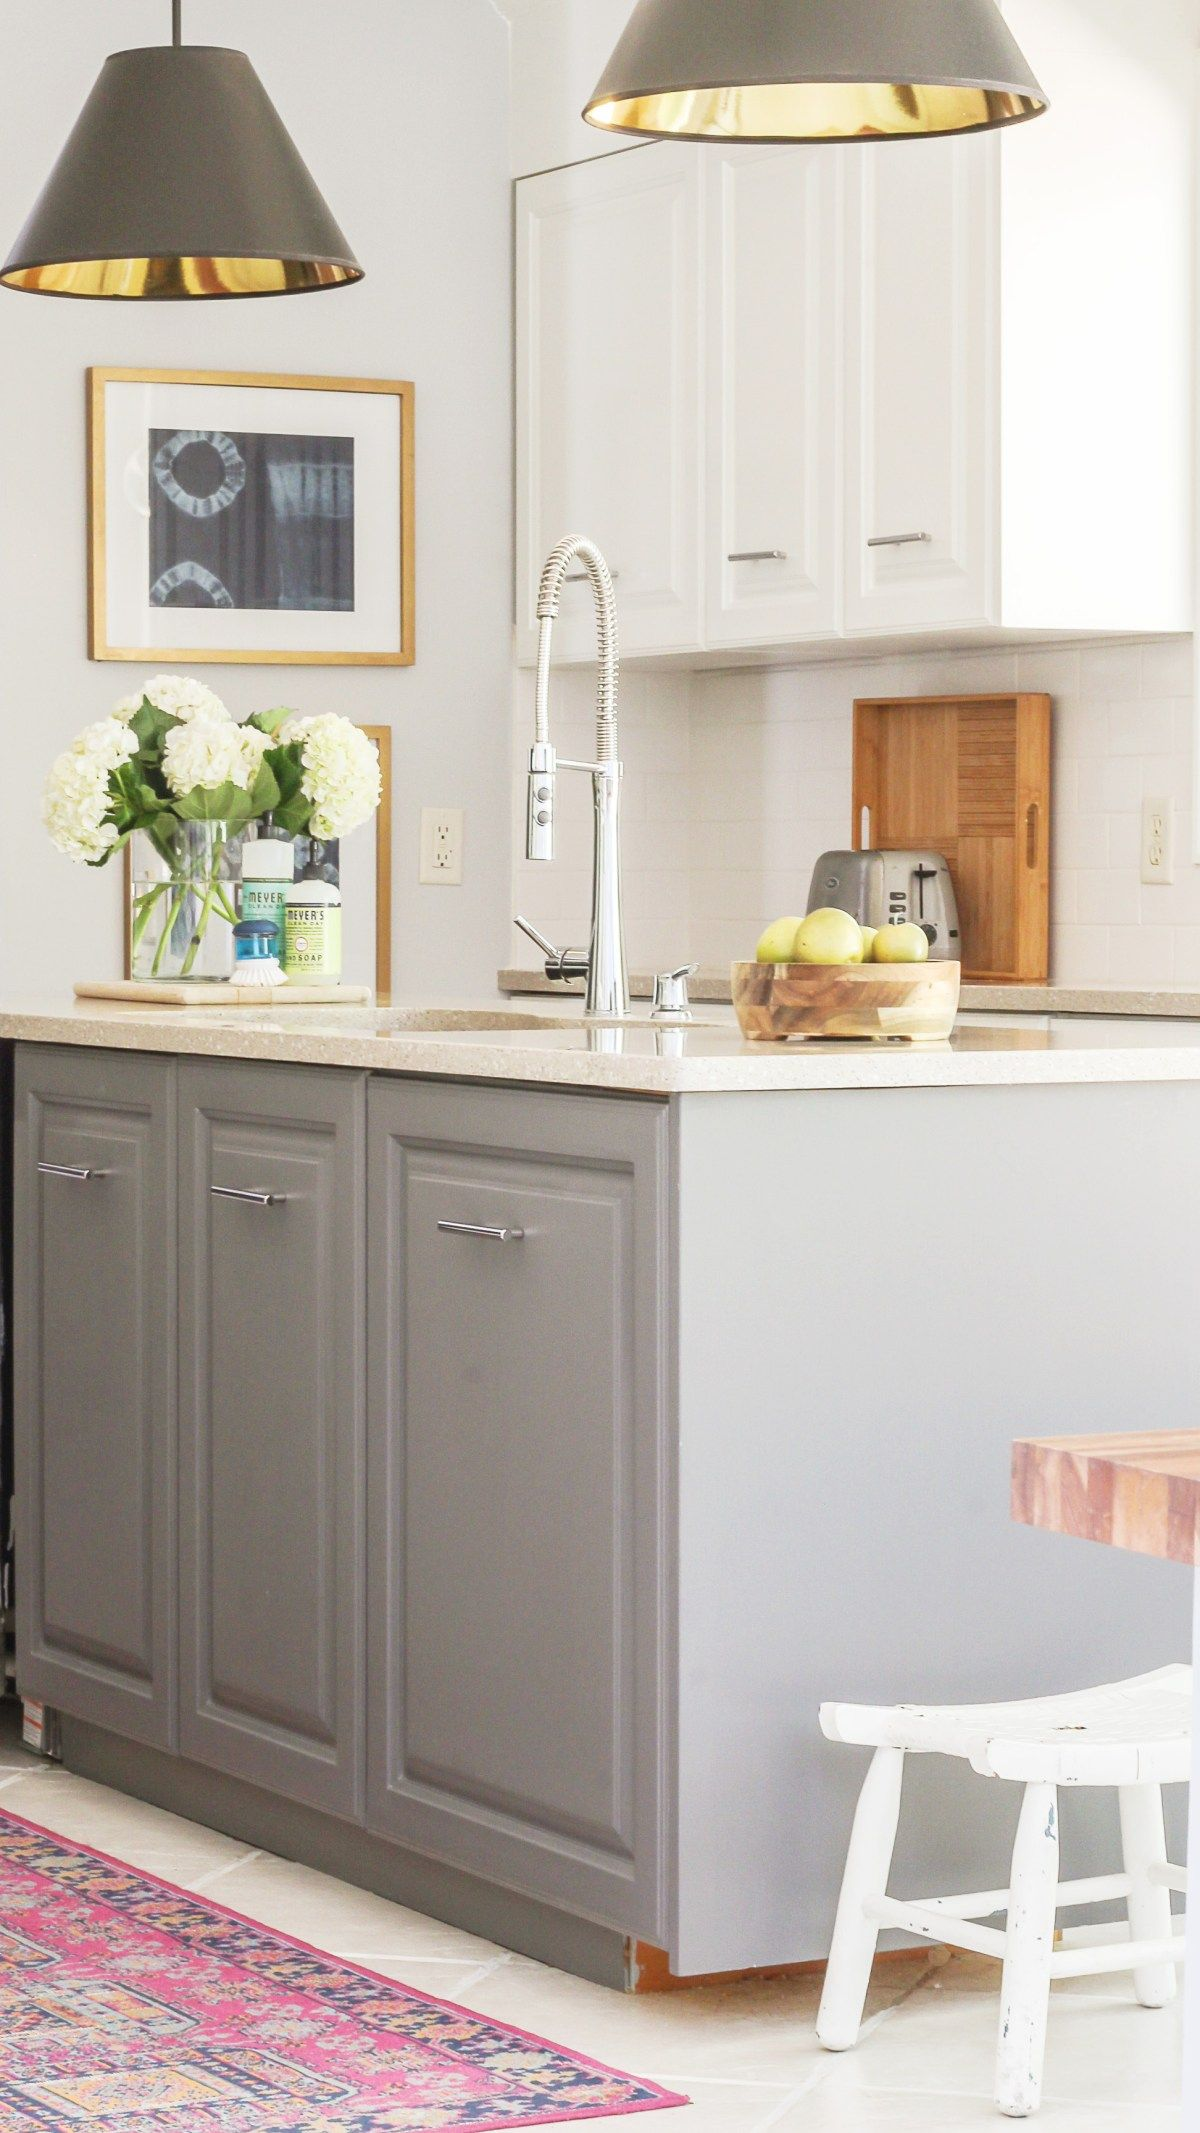 Fastest Way To Paint Kitchen Cabinets The Ultimate Hack Milk Paint Kitchen Cabinets Painting Kitchen Cabinets Refurbished Kitchen Cabinets